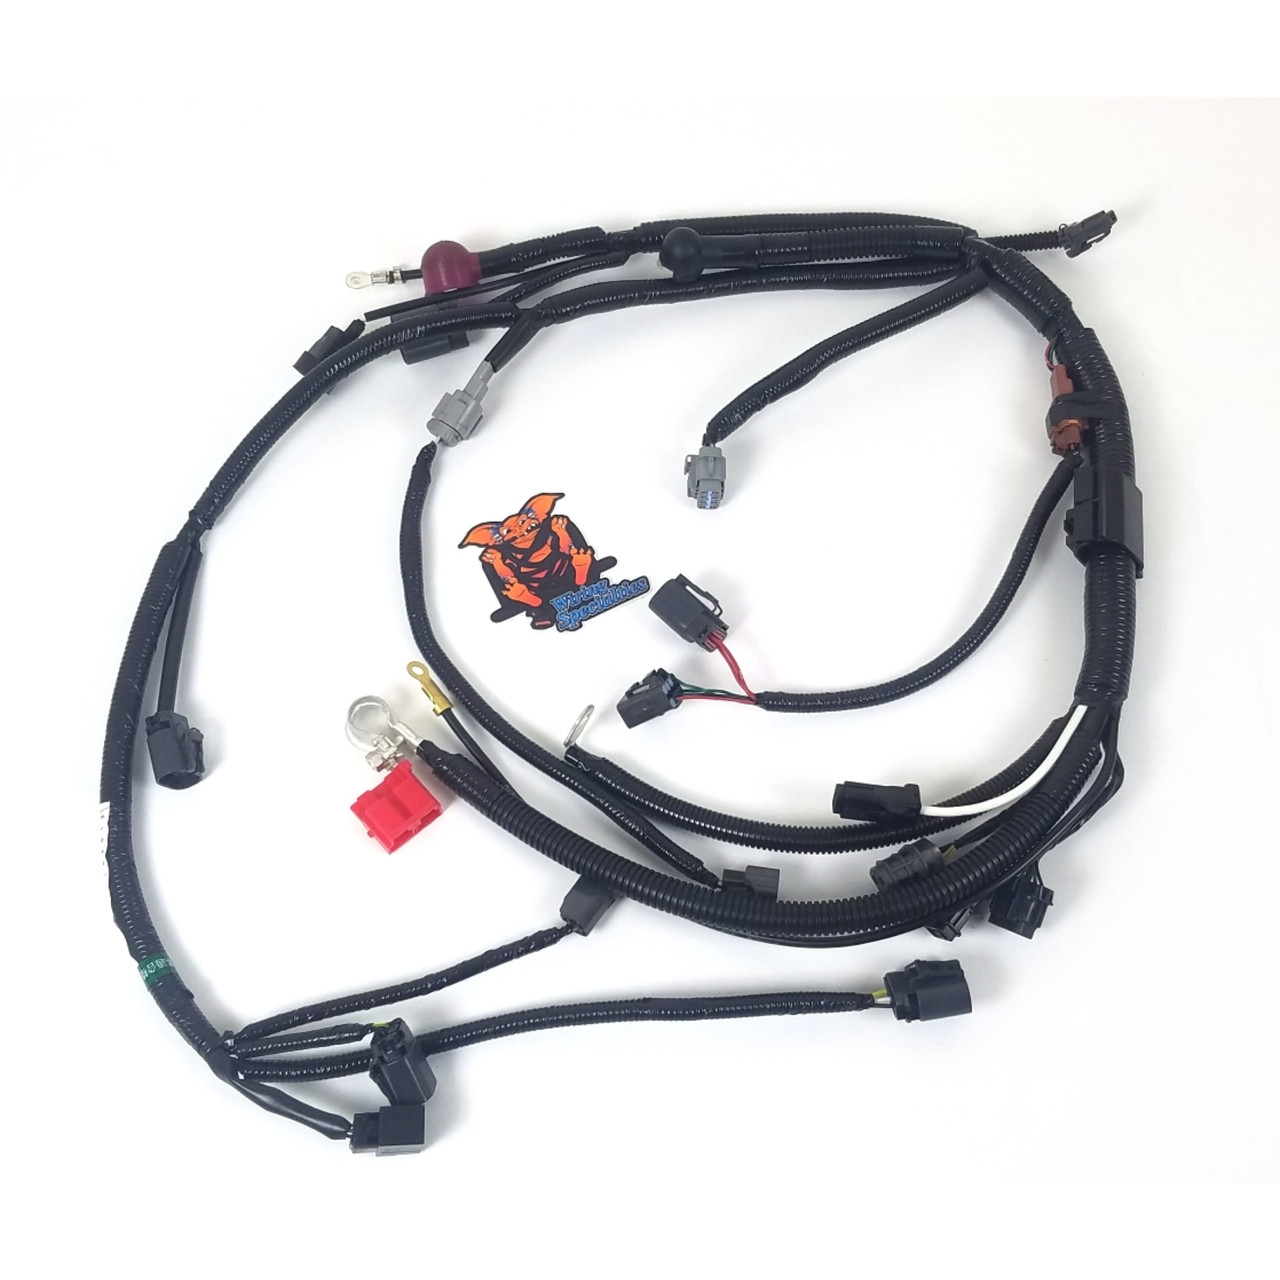 wiring specialties s14 ka24de lower harness for 240sx s14 - enjuku racing  parts, llc